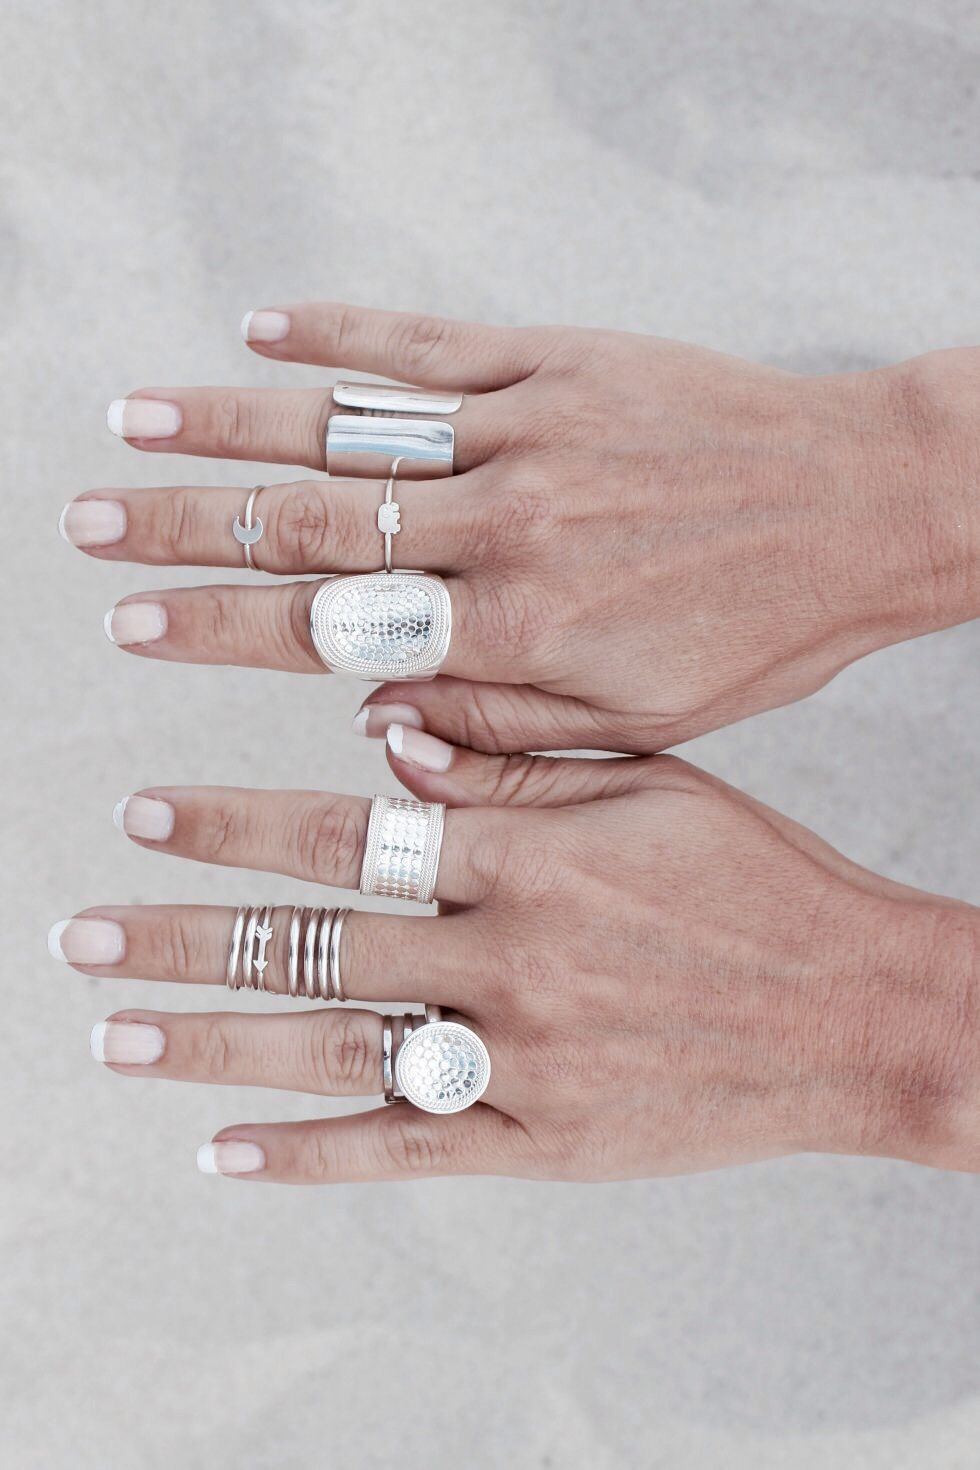 Rings - boho jewelry set. For more follow www.pinterest.com/ninayay and stay positively #pinspired #pinspire @ninayay